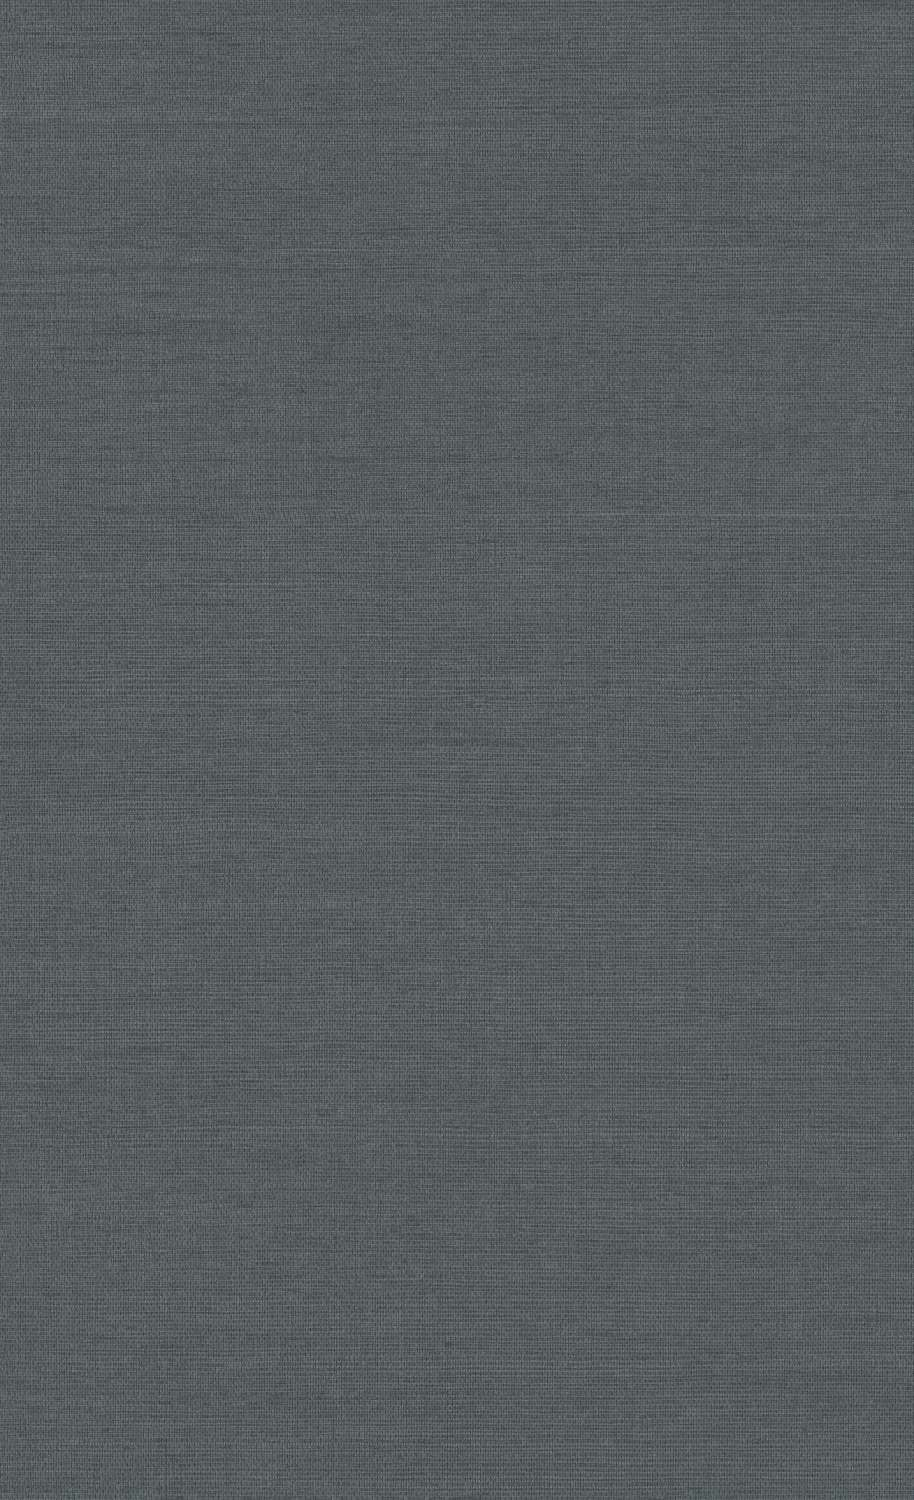 Plain Dark Grey Textured Wallpaper C7265. Commercial wallpaper. Vinyl Wall covering. Hospitality wallpaper.